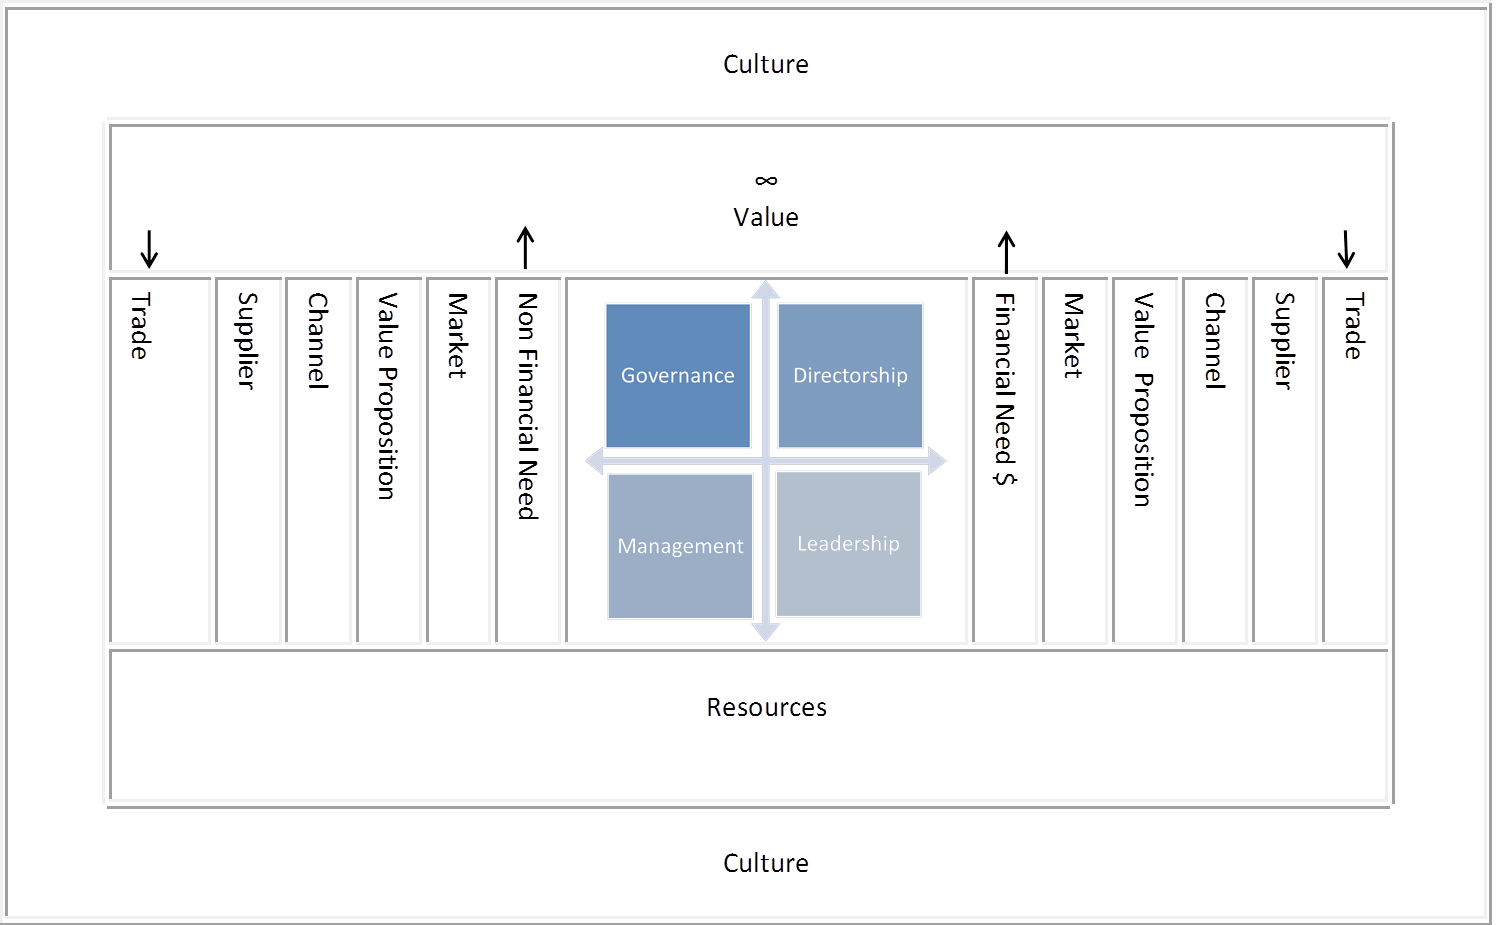 Step 1:  See the board and management in the center of the logic of value creation.